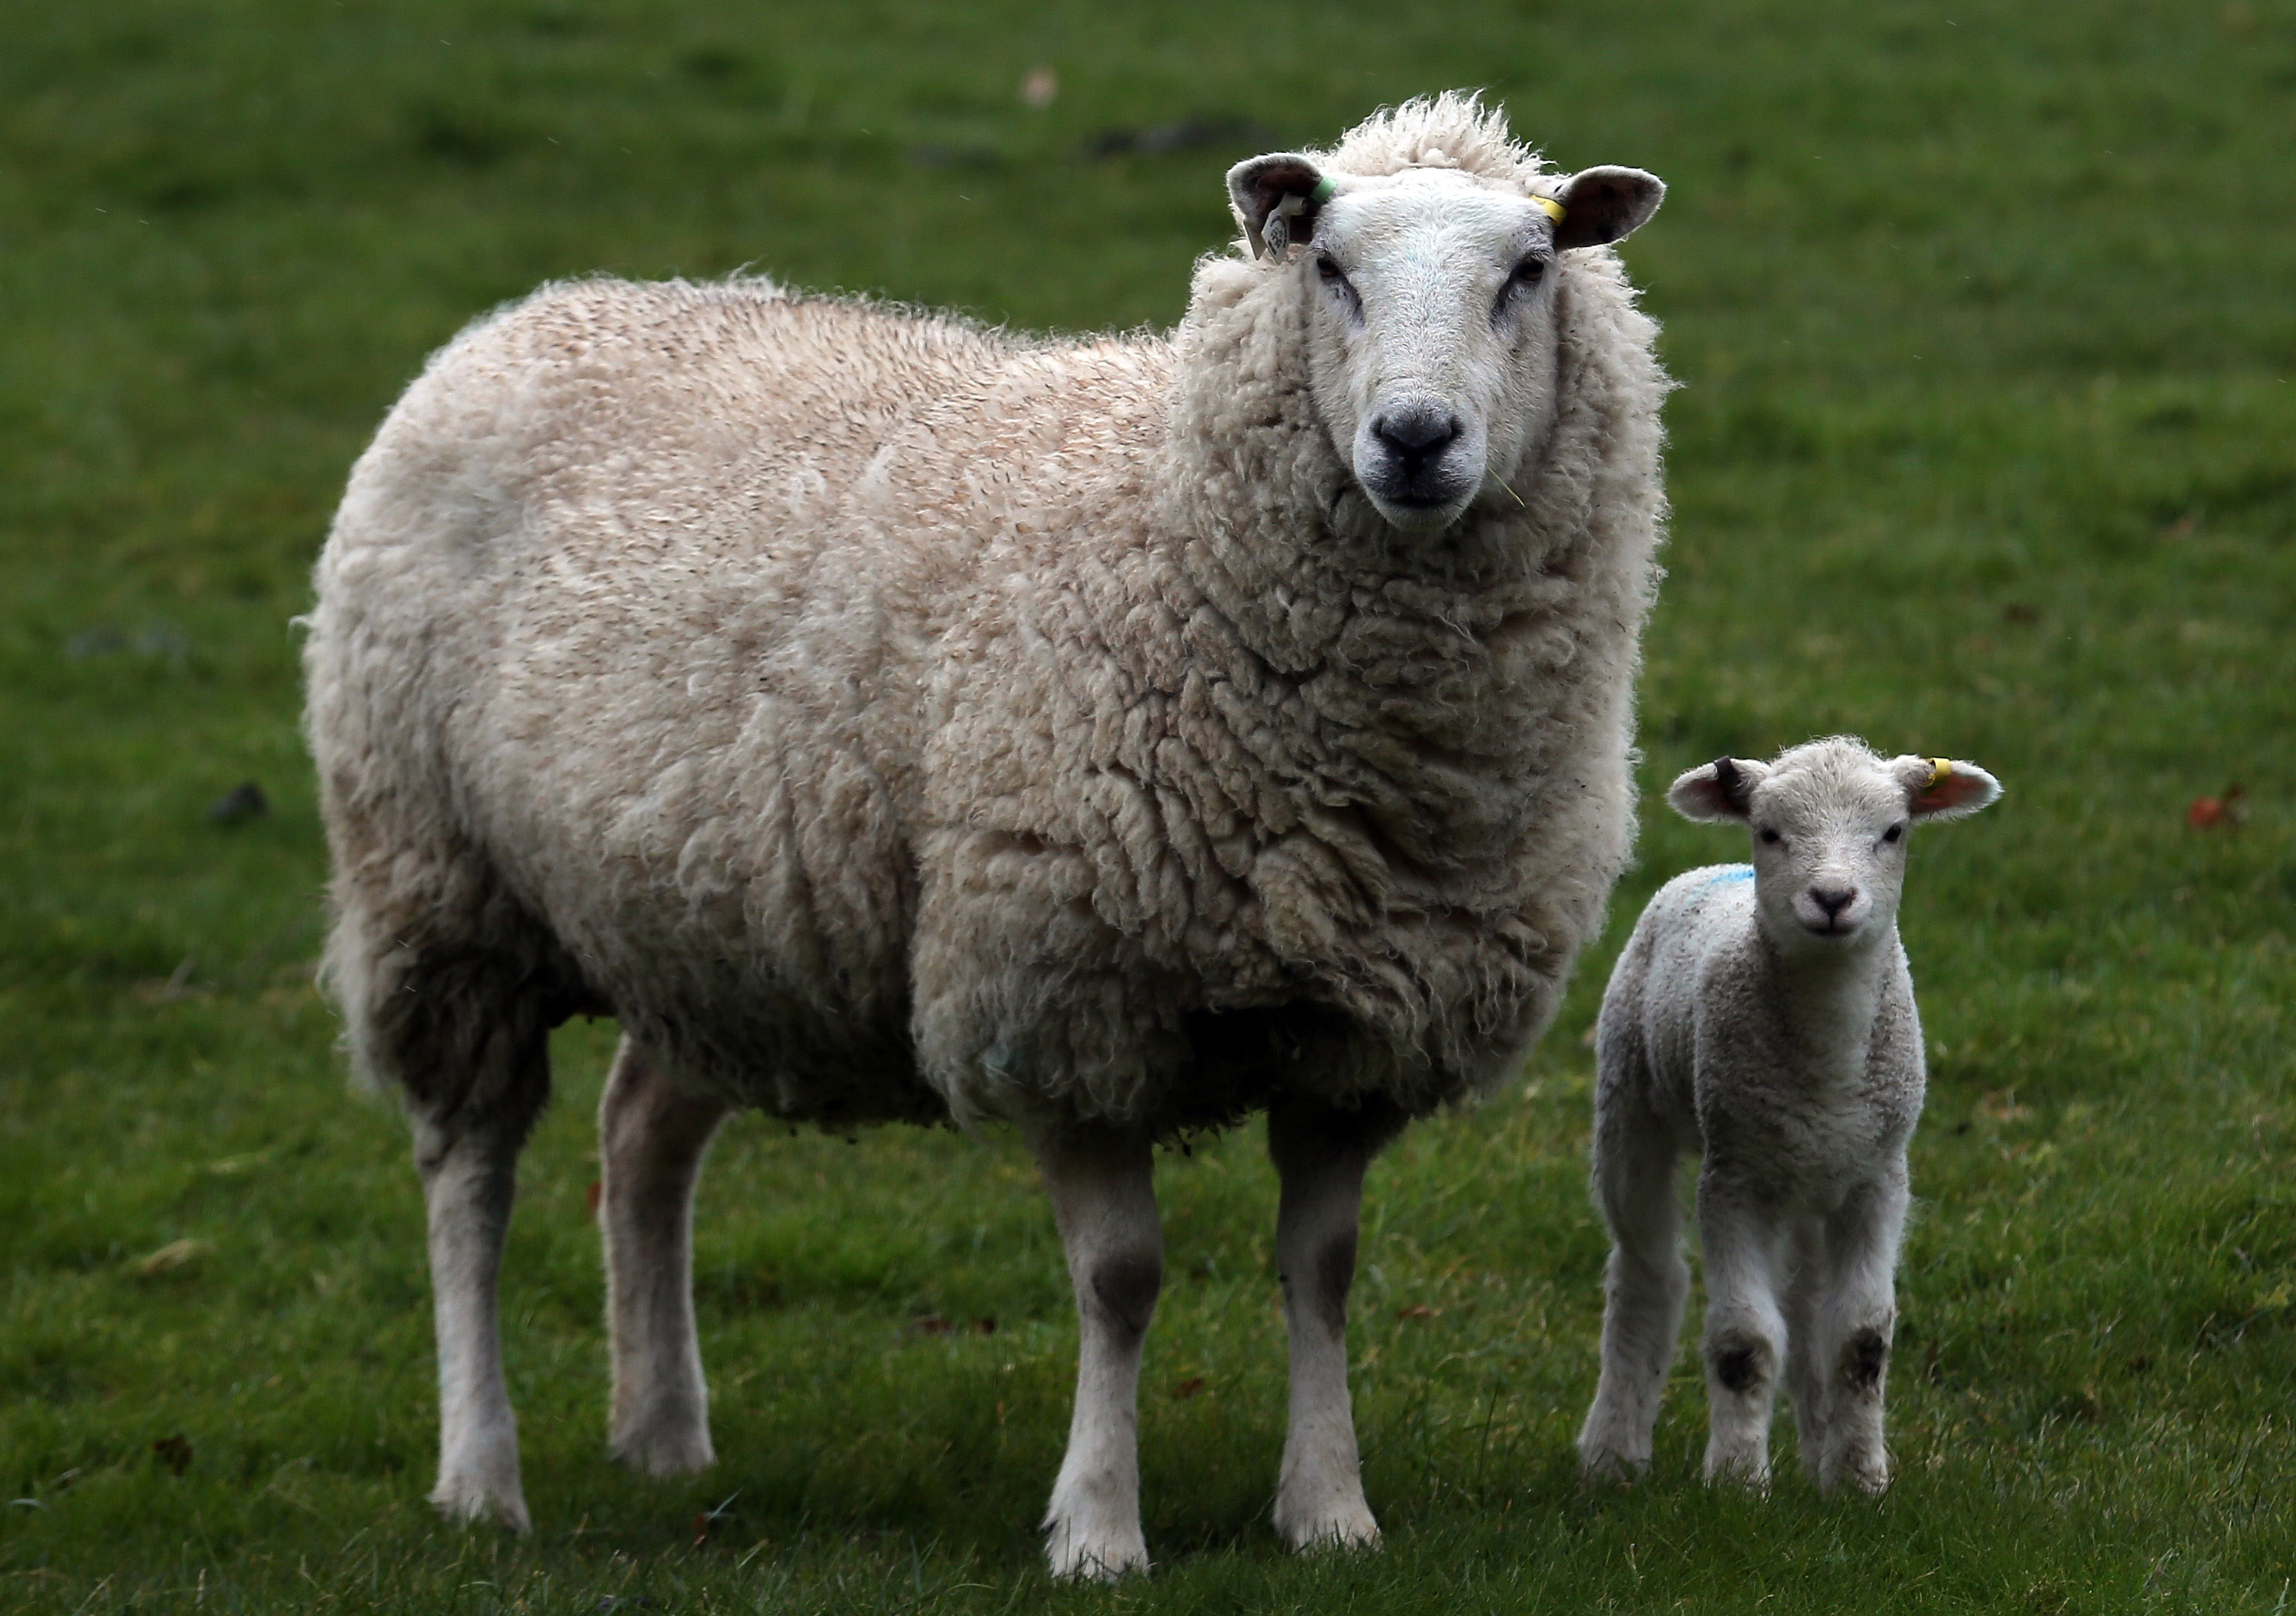 Baby Sheep and its Mother at Pasture